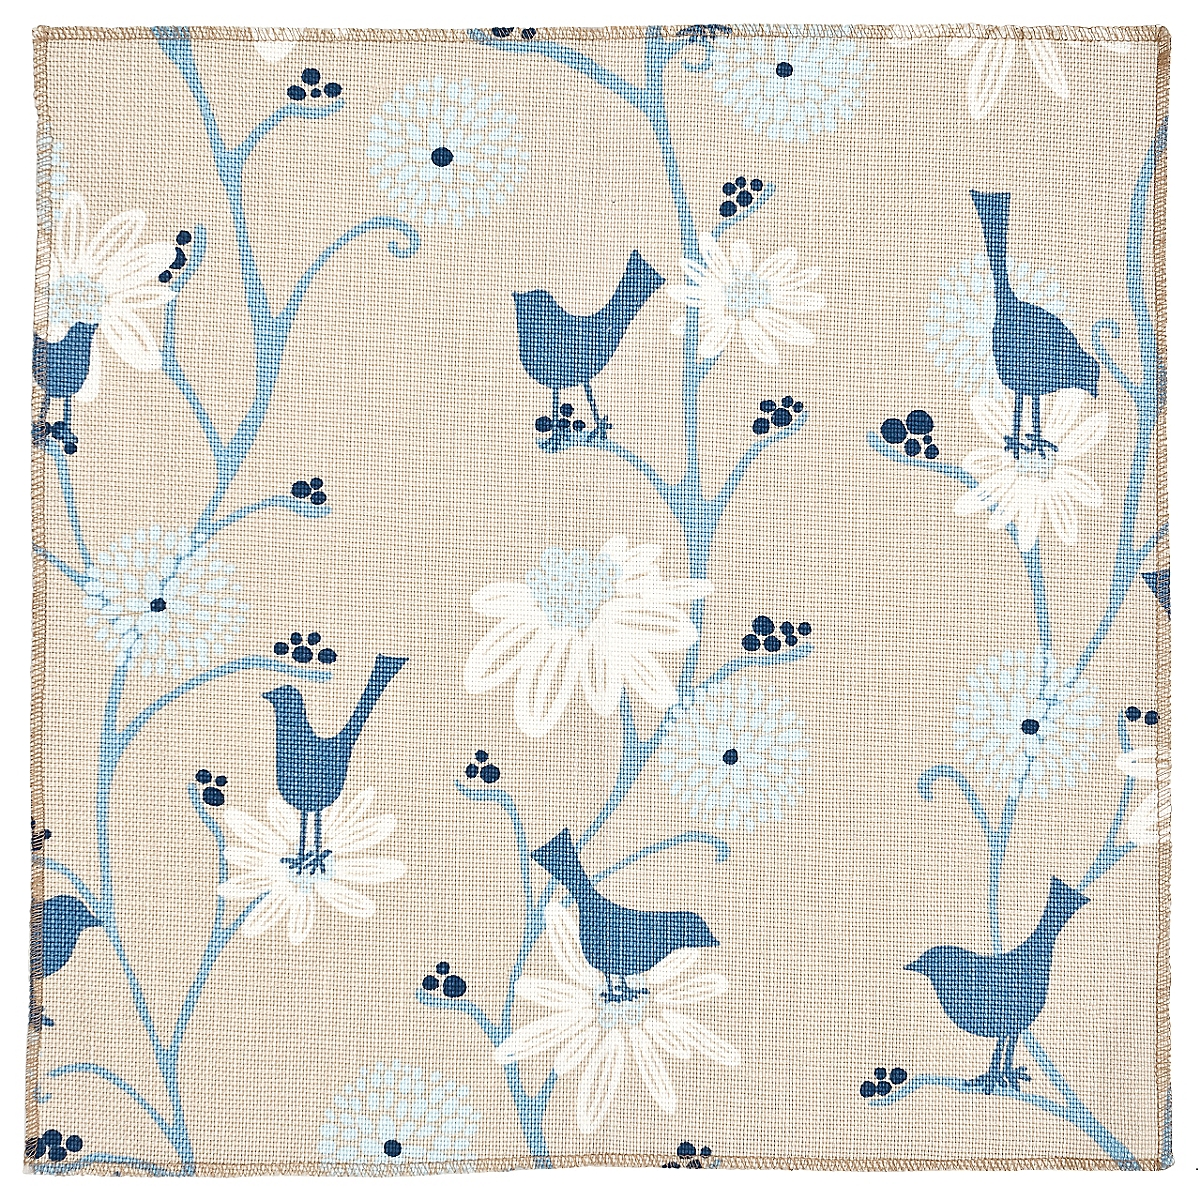 Tweet Suite: Ivory (fabric yardage)